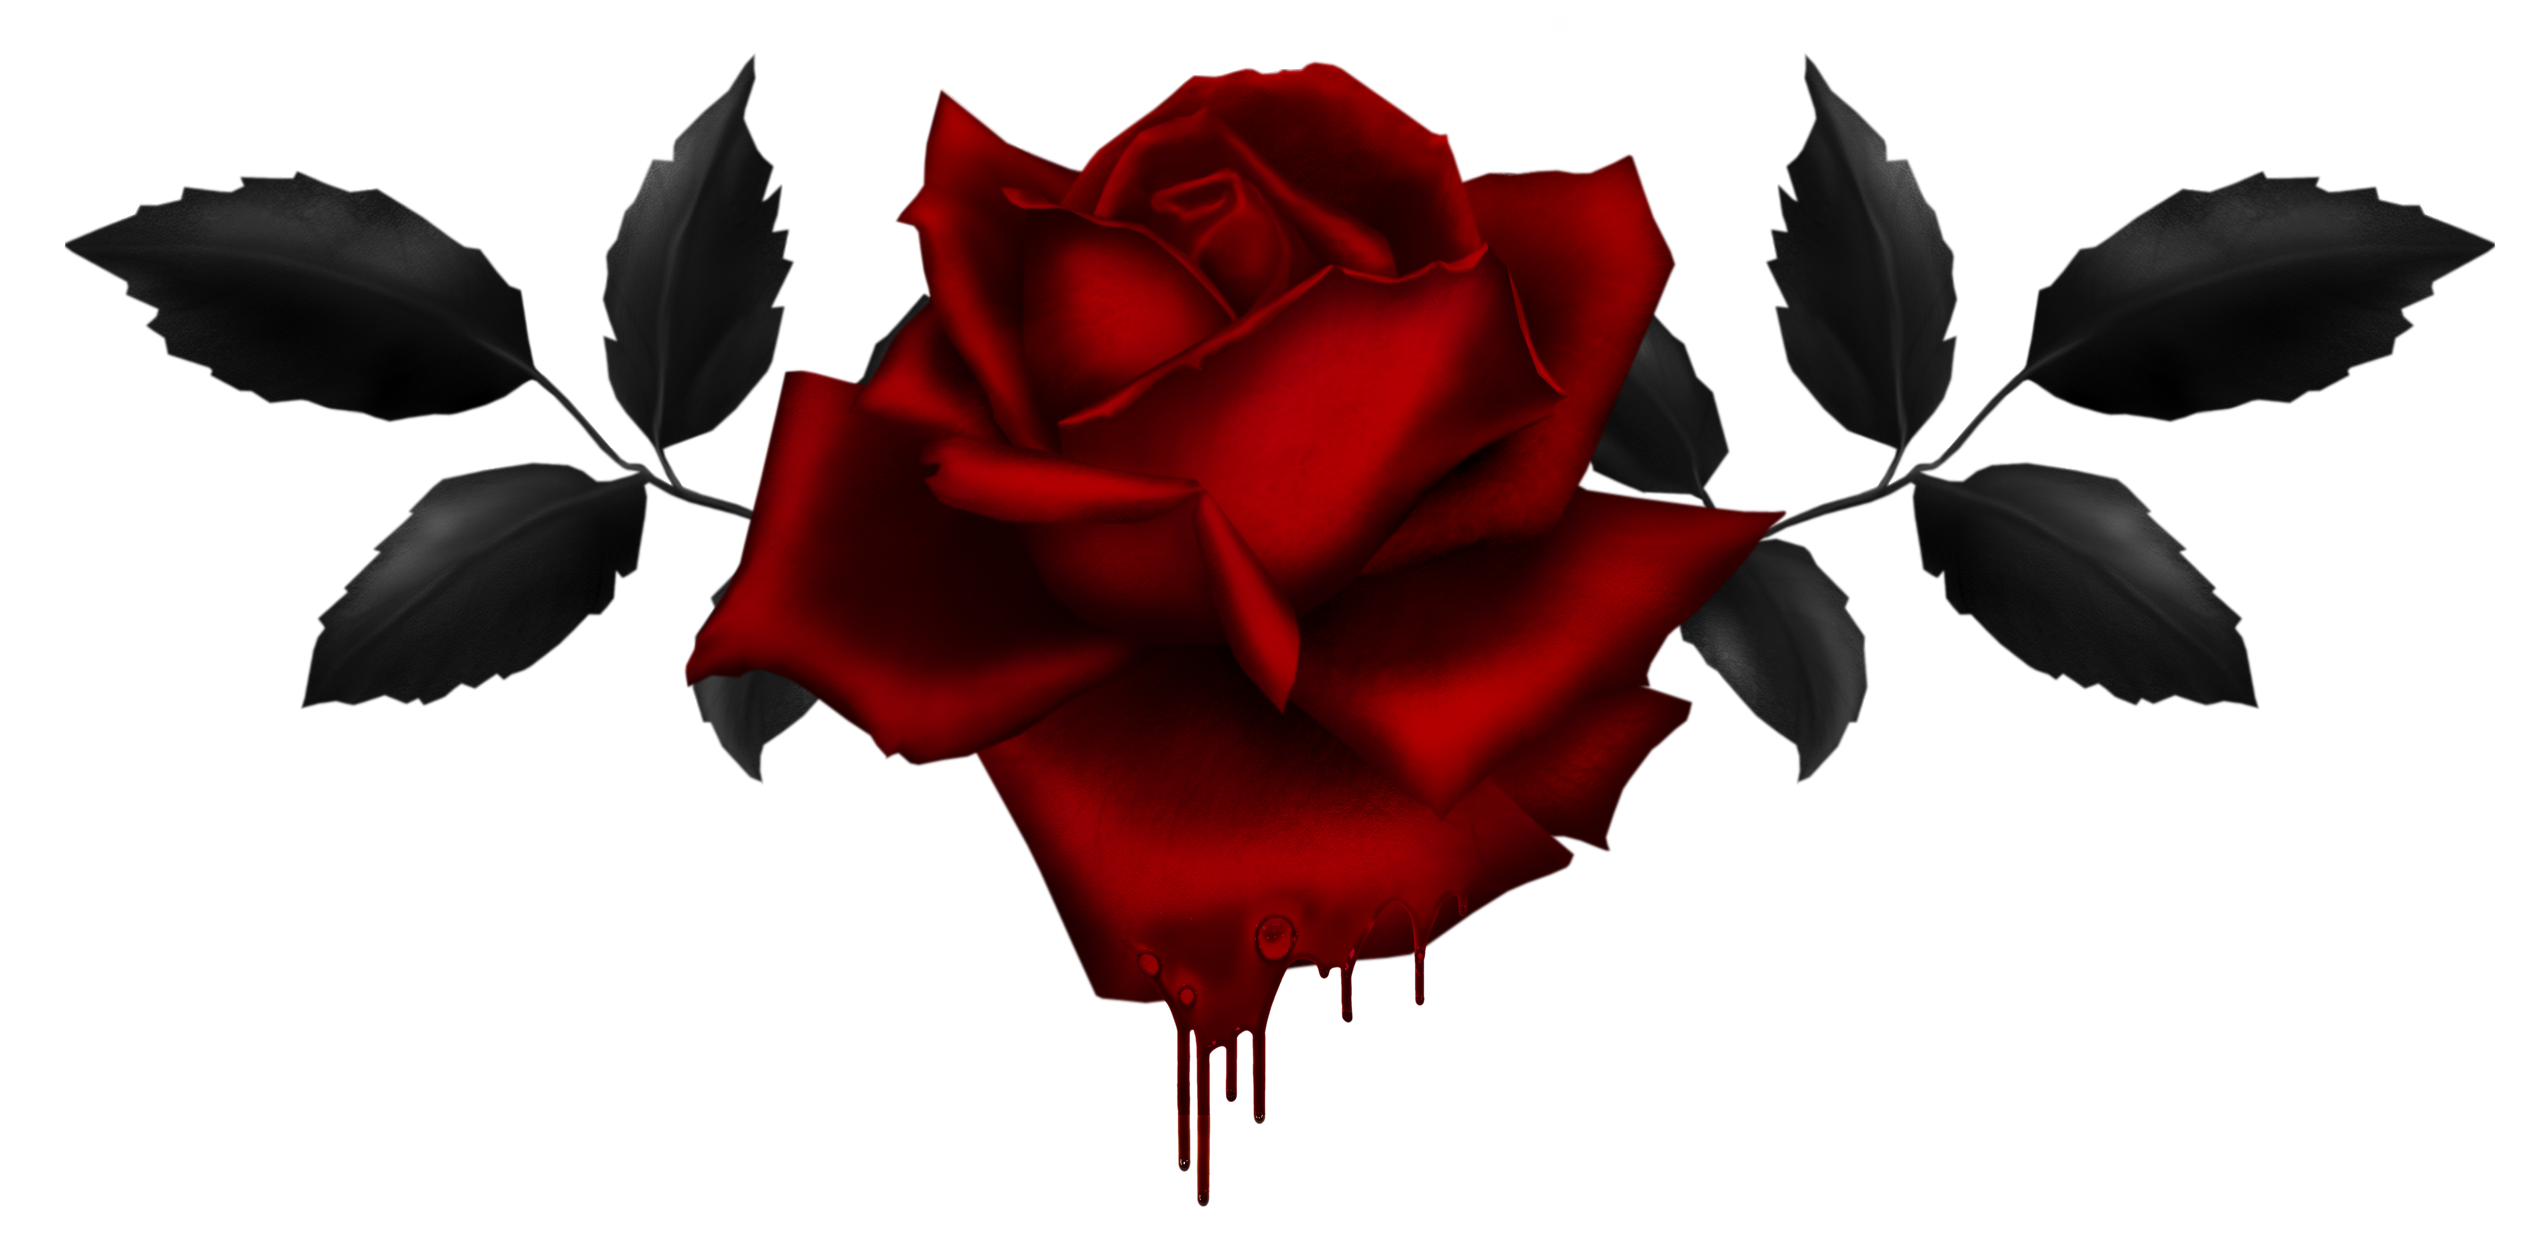 2544x1243 Gothic Rose PNG Image Mart